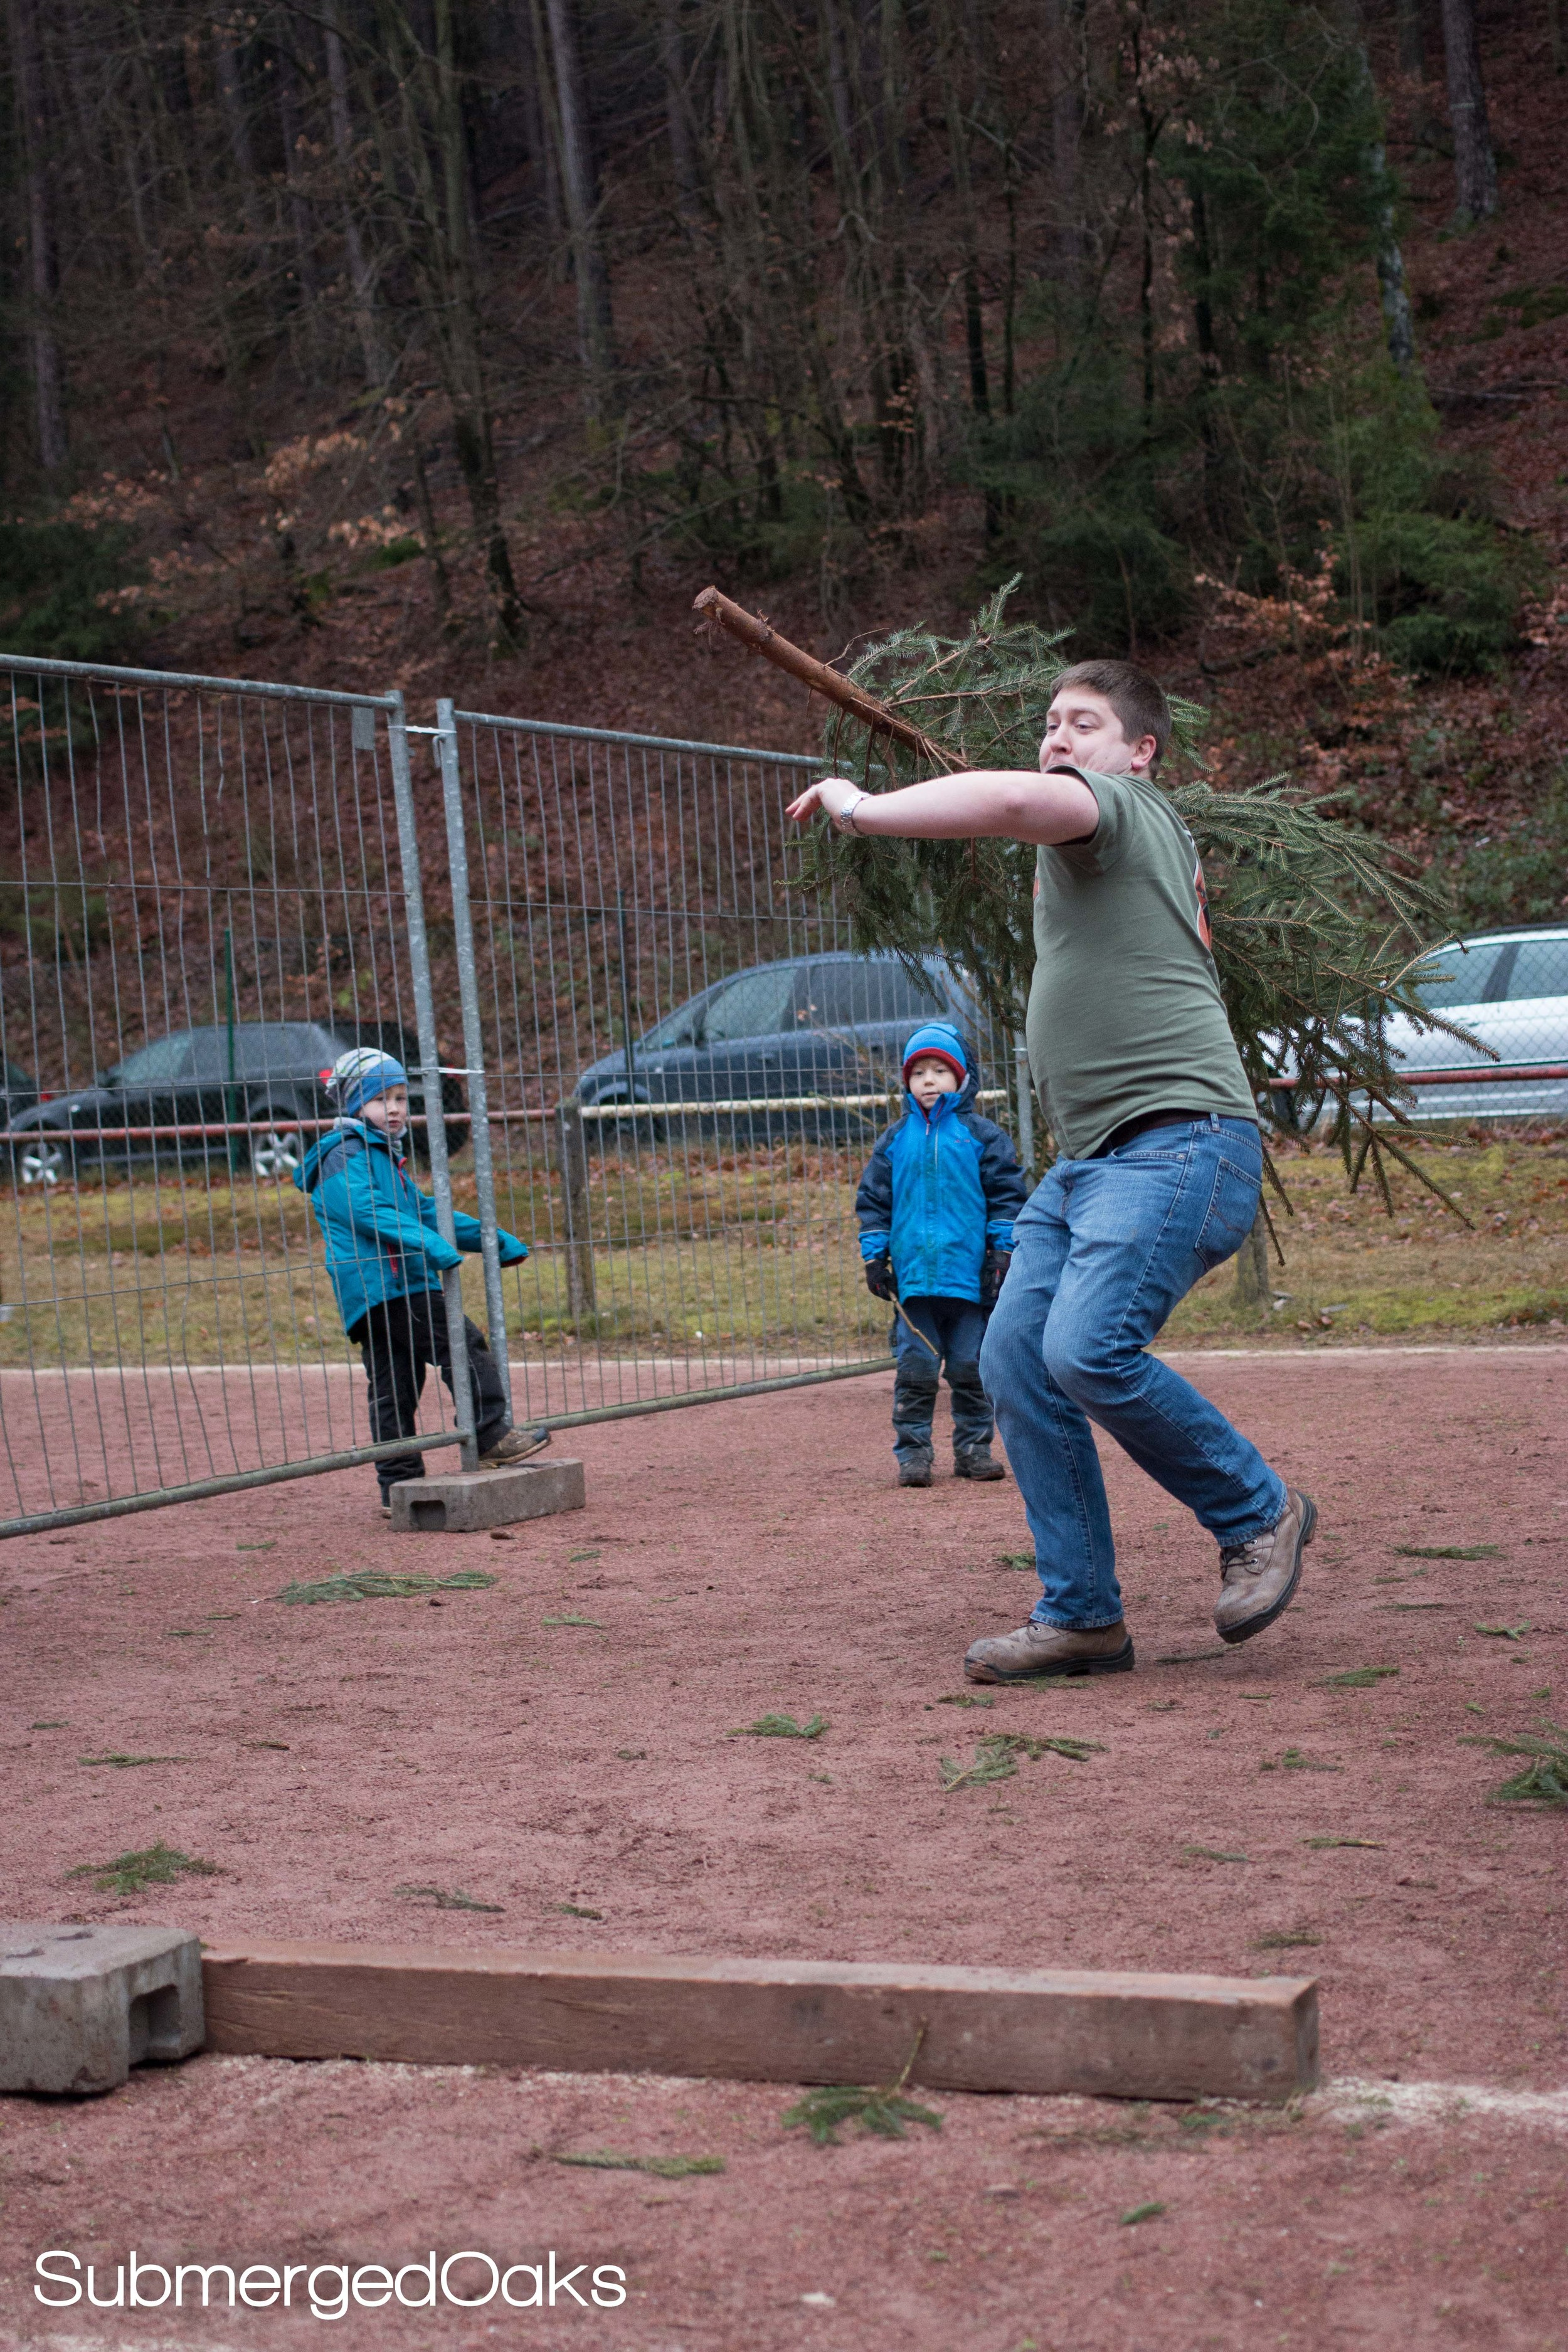 Aaron taking his turn at the JAVELIN style throw